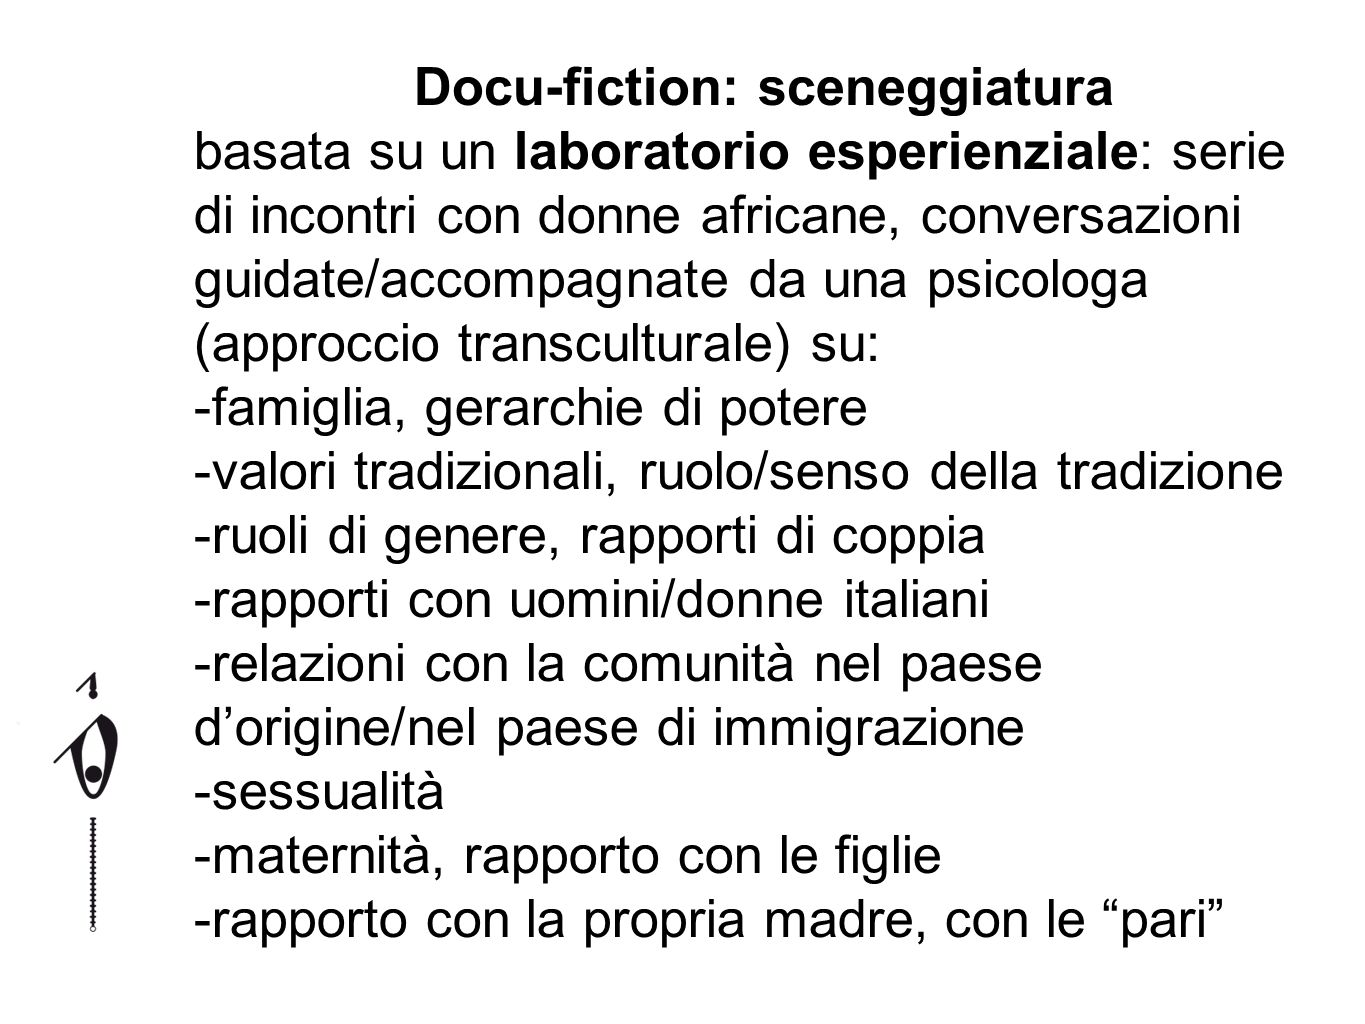 Docu-fiction: sceneggiatura